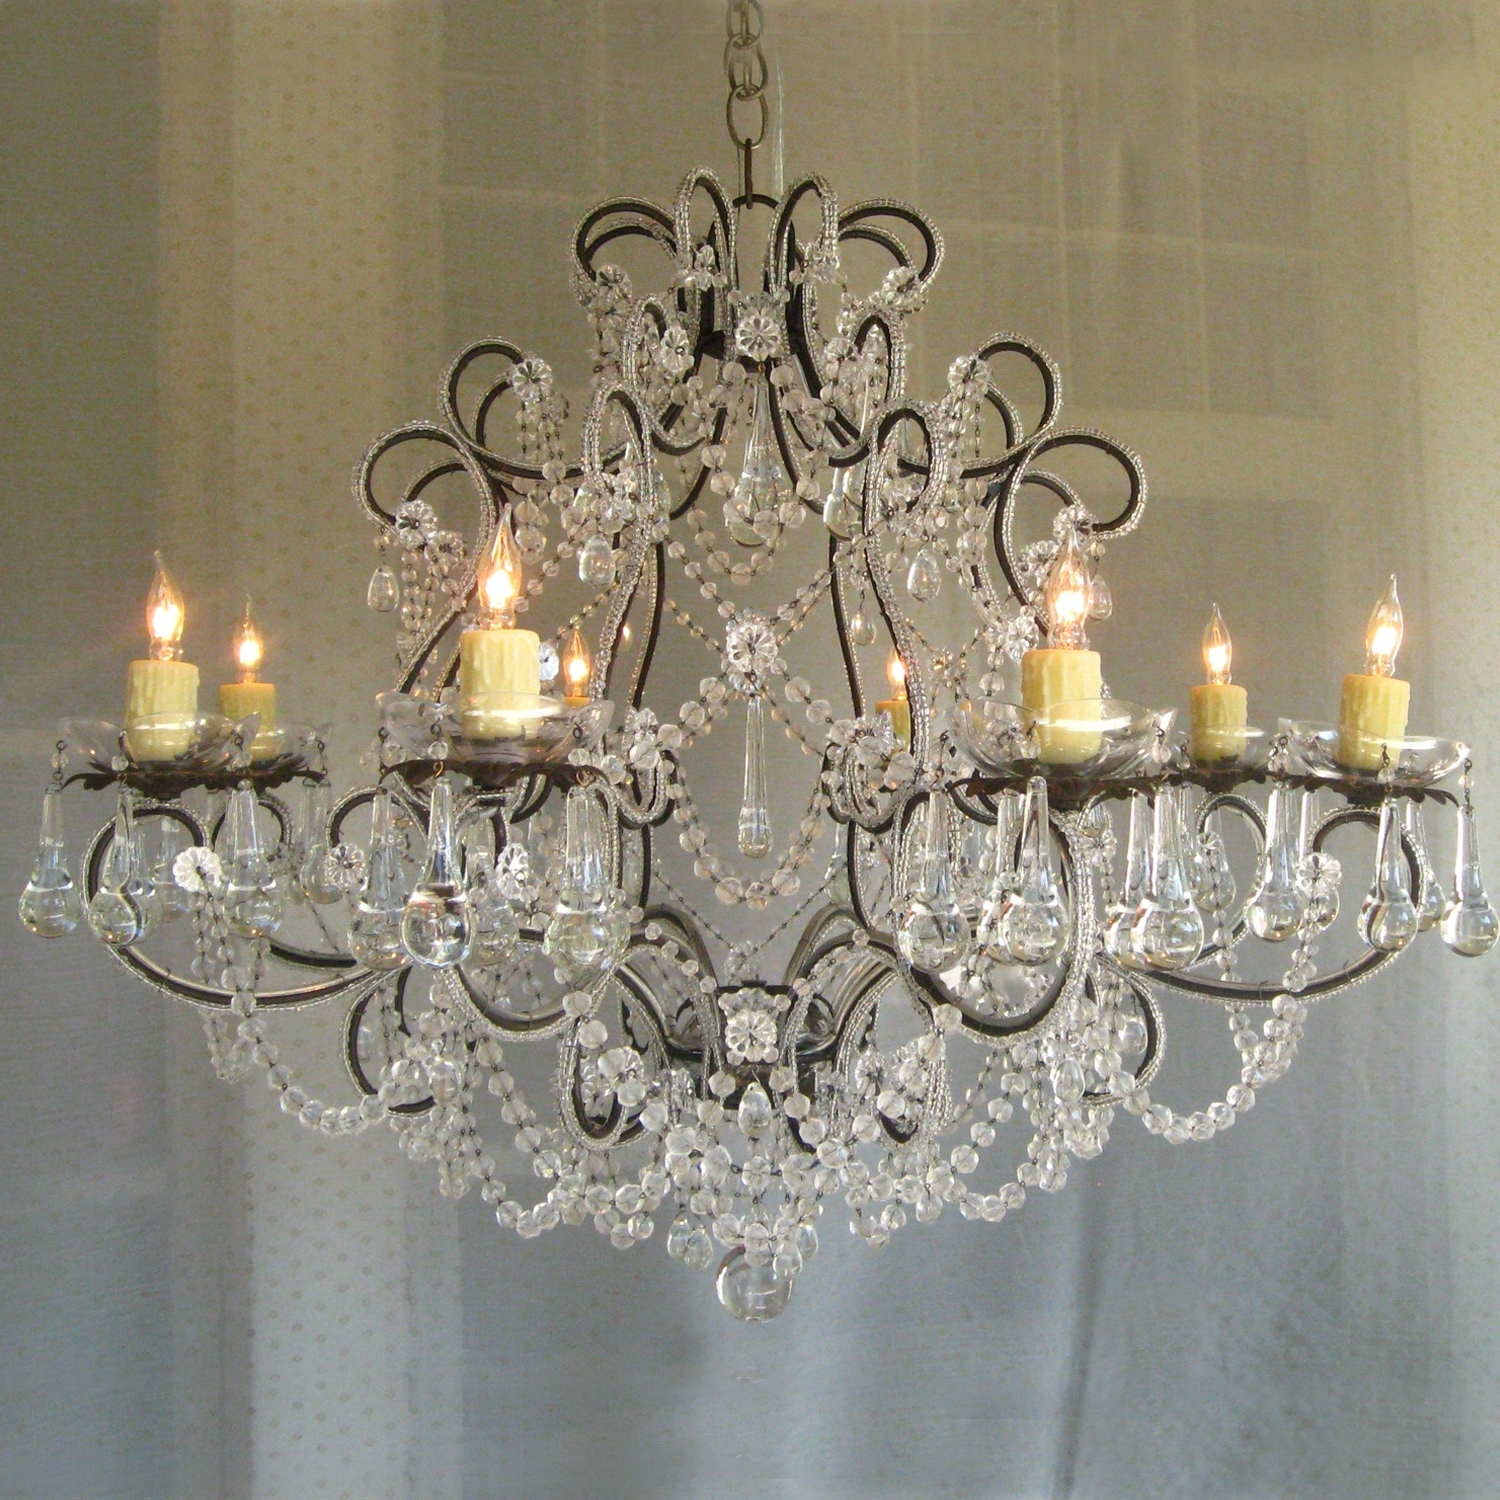 Shabby Chic Chandeliers Within Widely Used Chandelier (View 20 of 20)